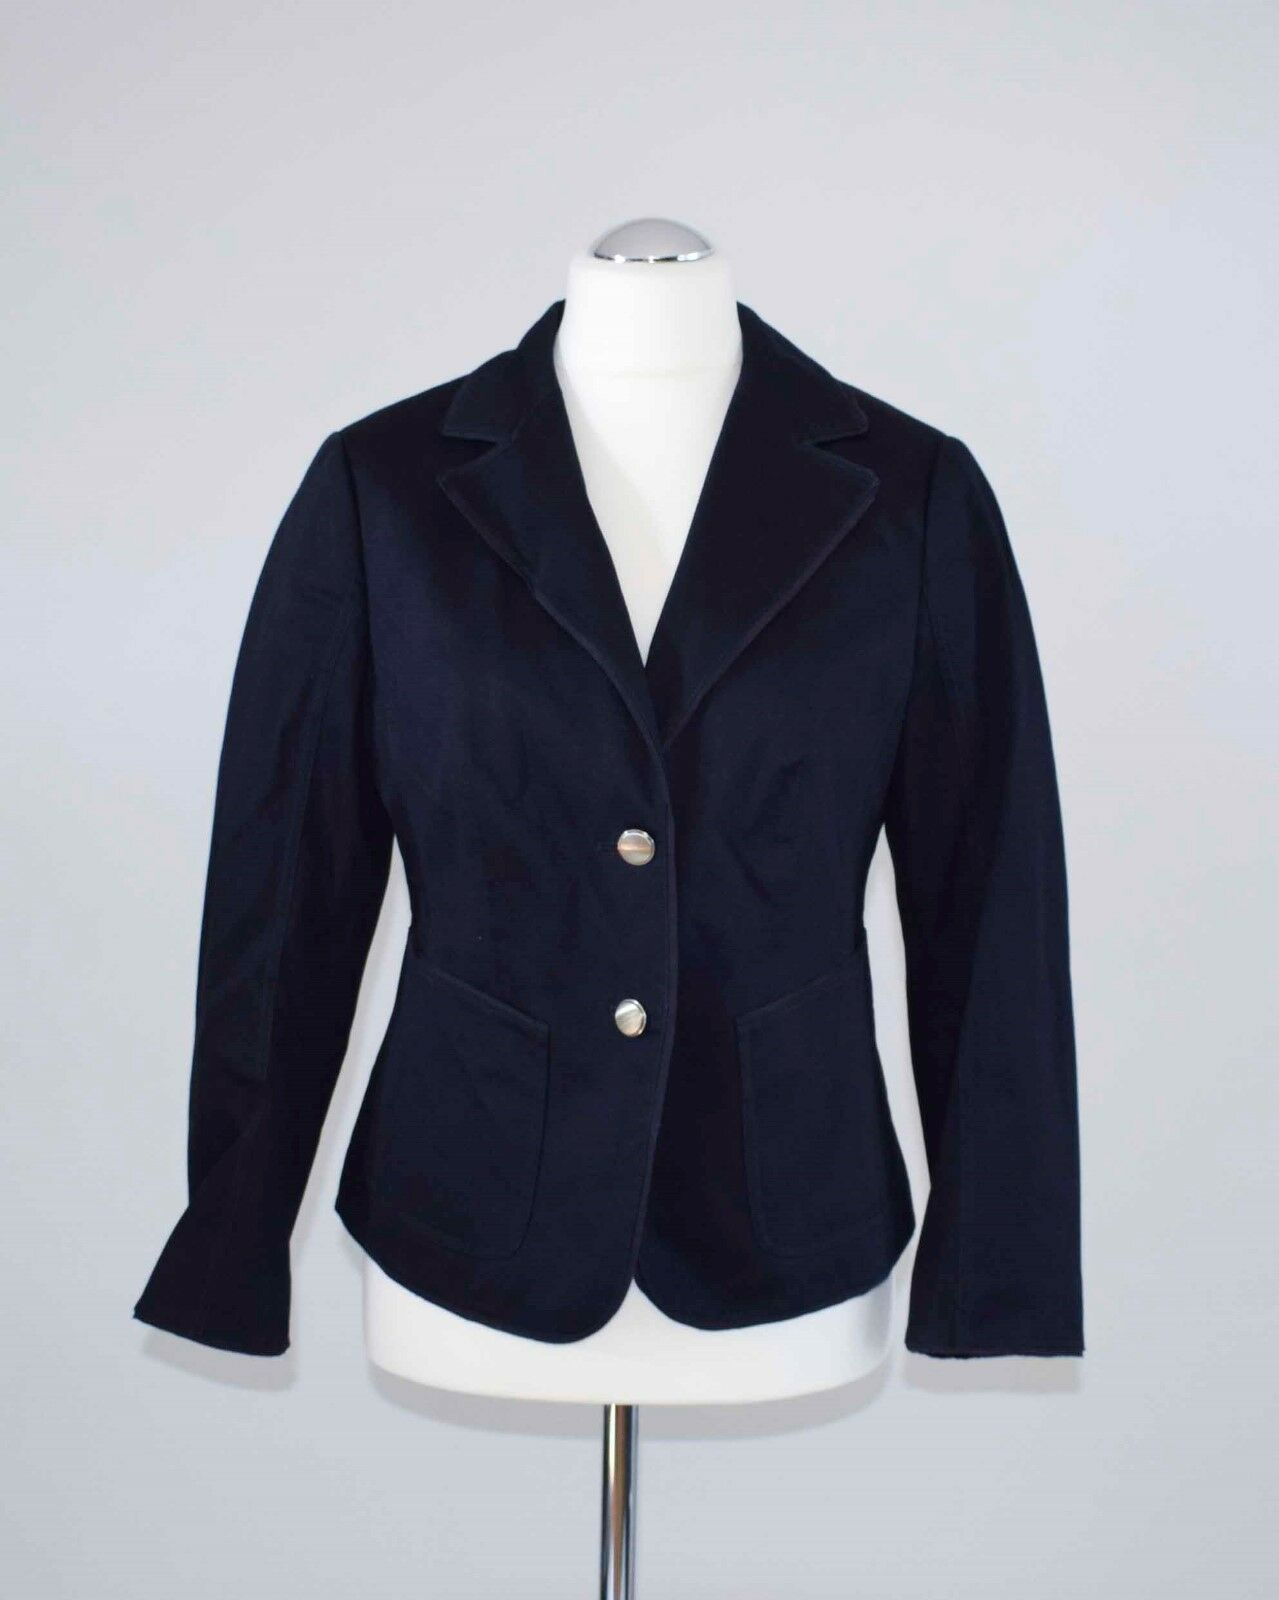 Betty Barclay Blazer DUNKELblue Gr.42 Ungetragen wie Neu